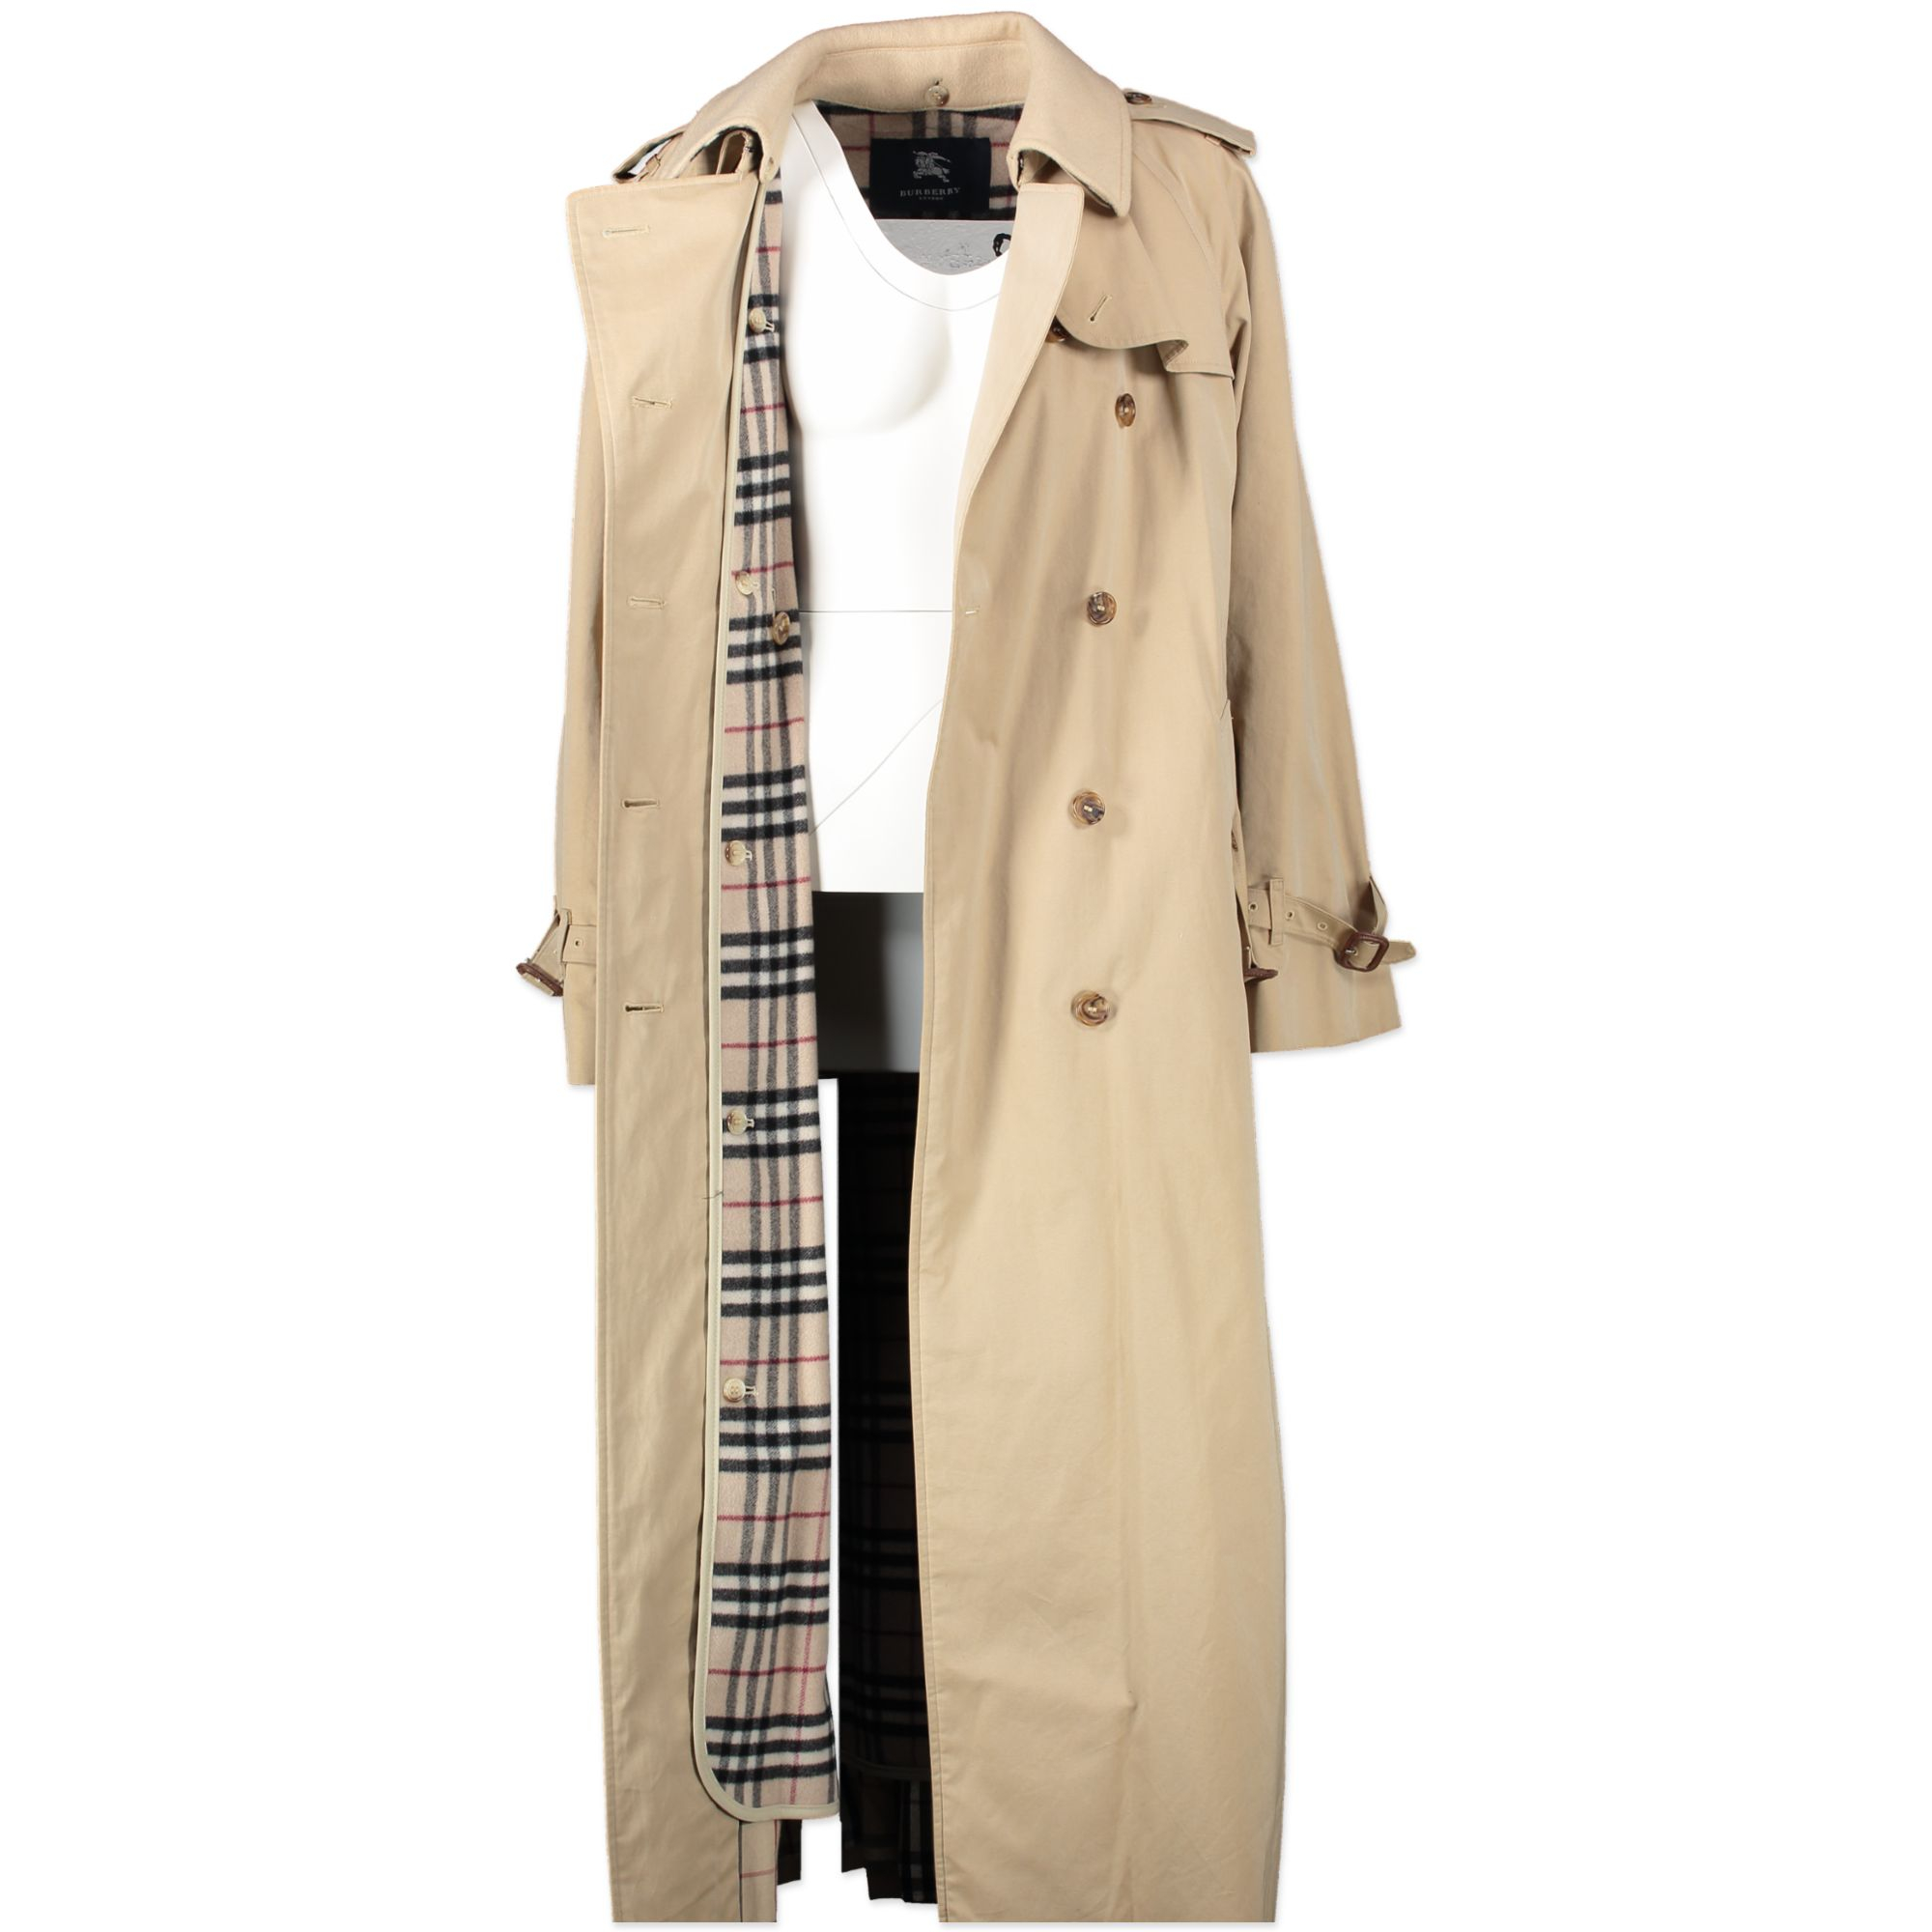 Burberry Long Wool & Nylon Trench Coat for the best price at Labellov secondhand luxury